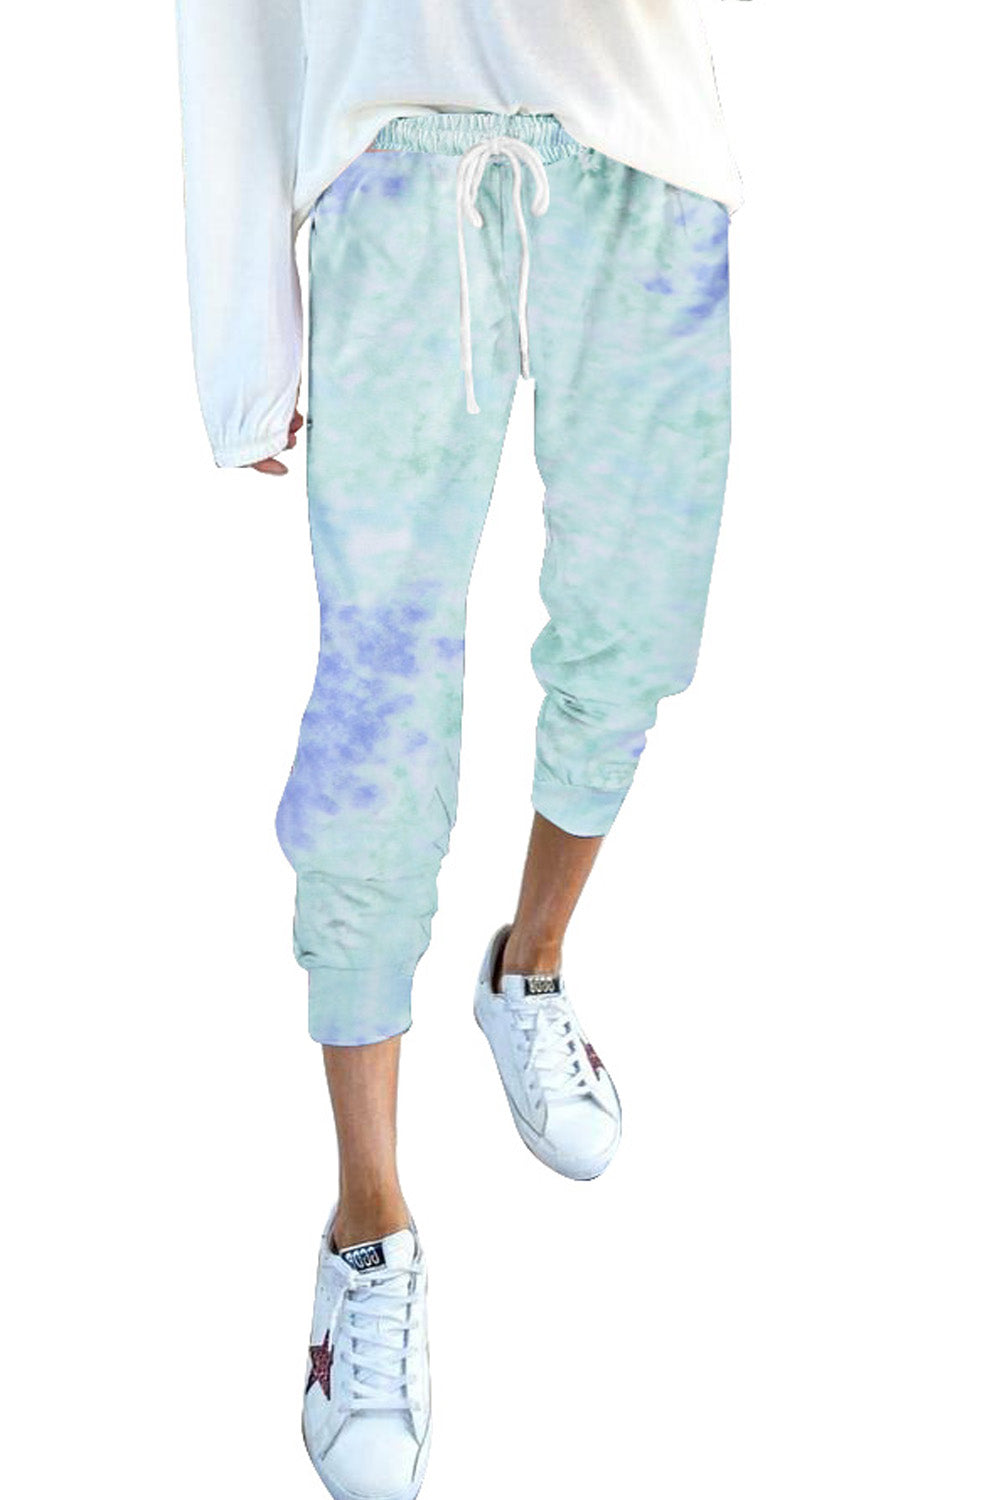 Sky Blue Drawstring Tie Dye Jogger Pants & Culotte Discount Designer Fashion Clothes Shoes Bags Women Men Kids Children Black Owned Business